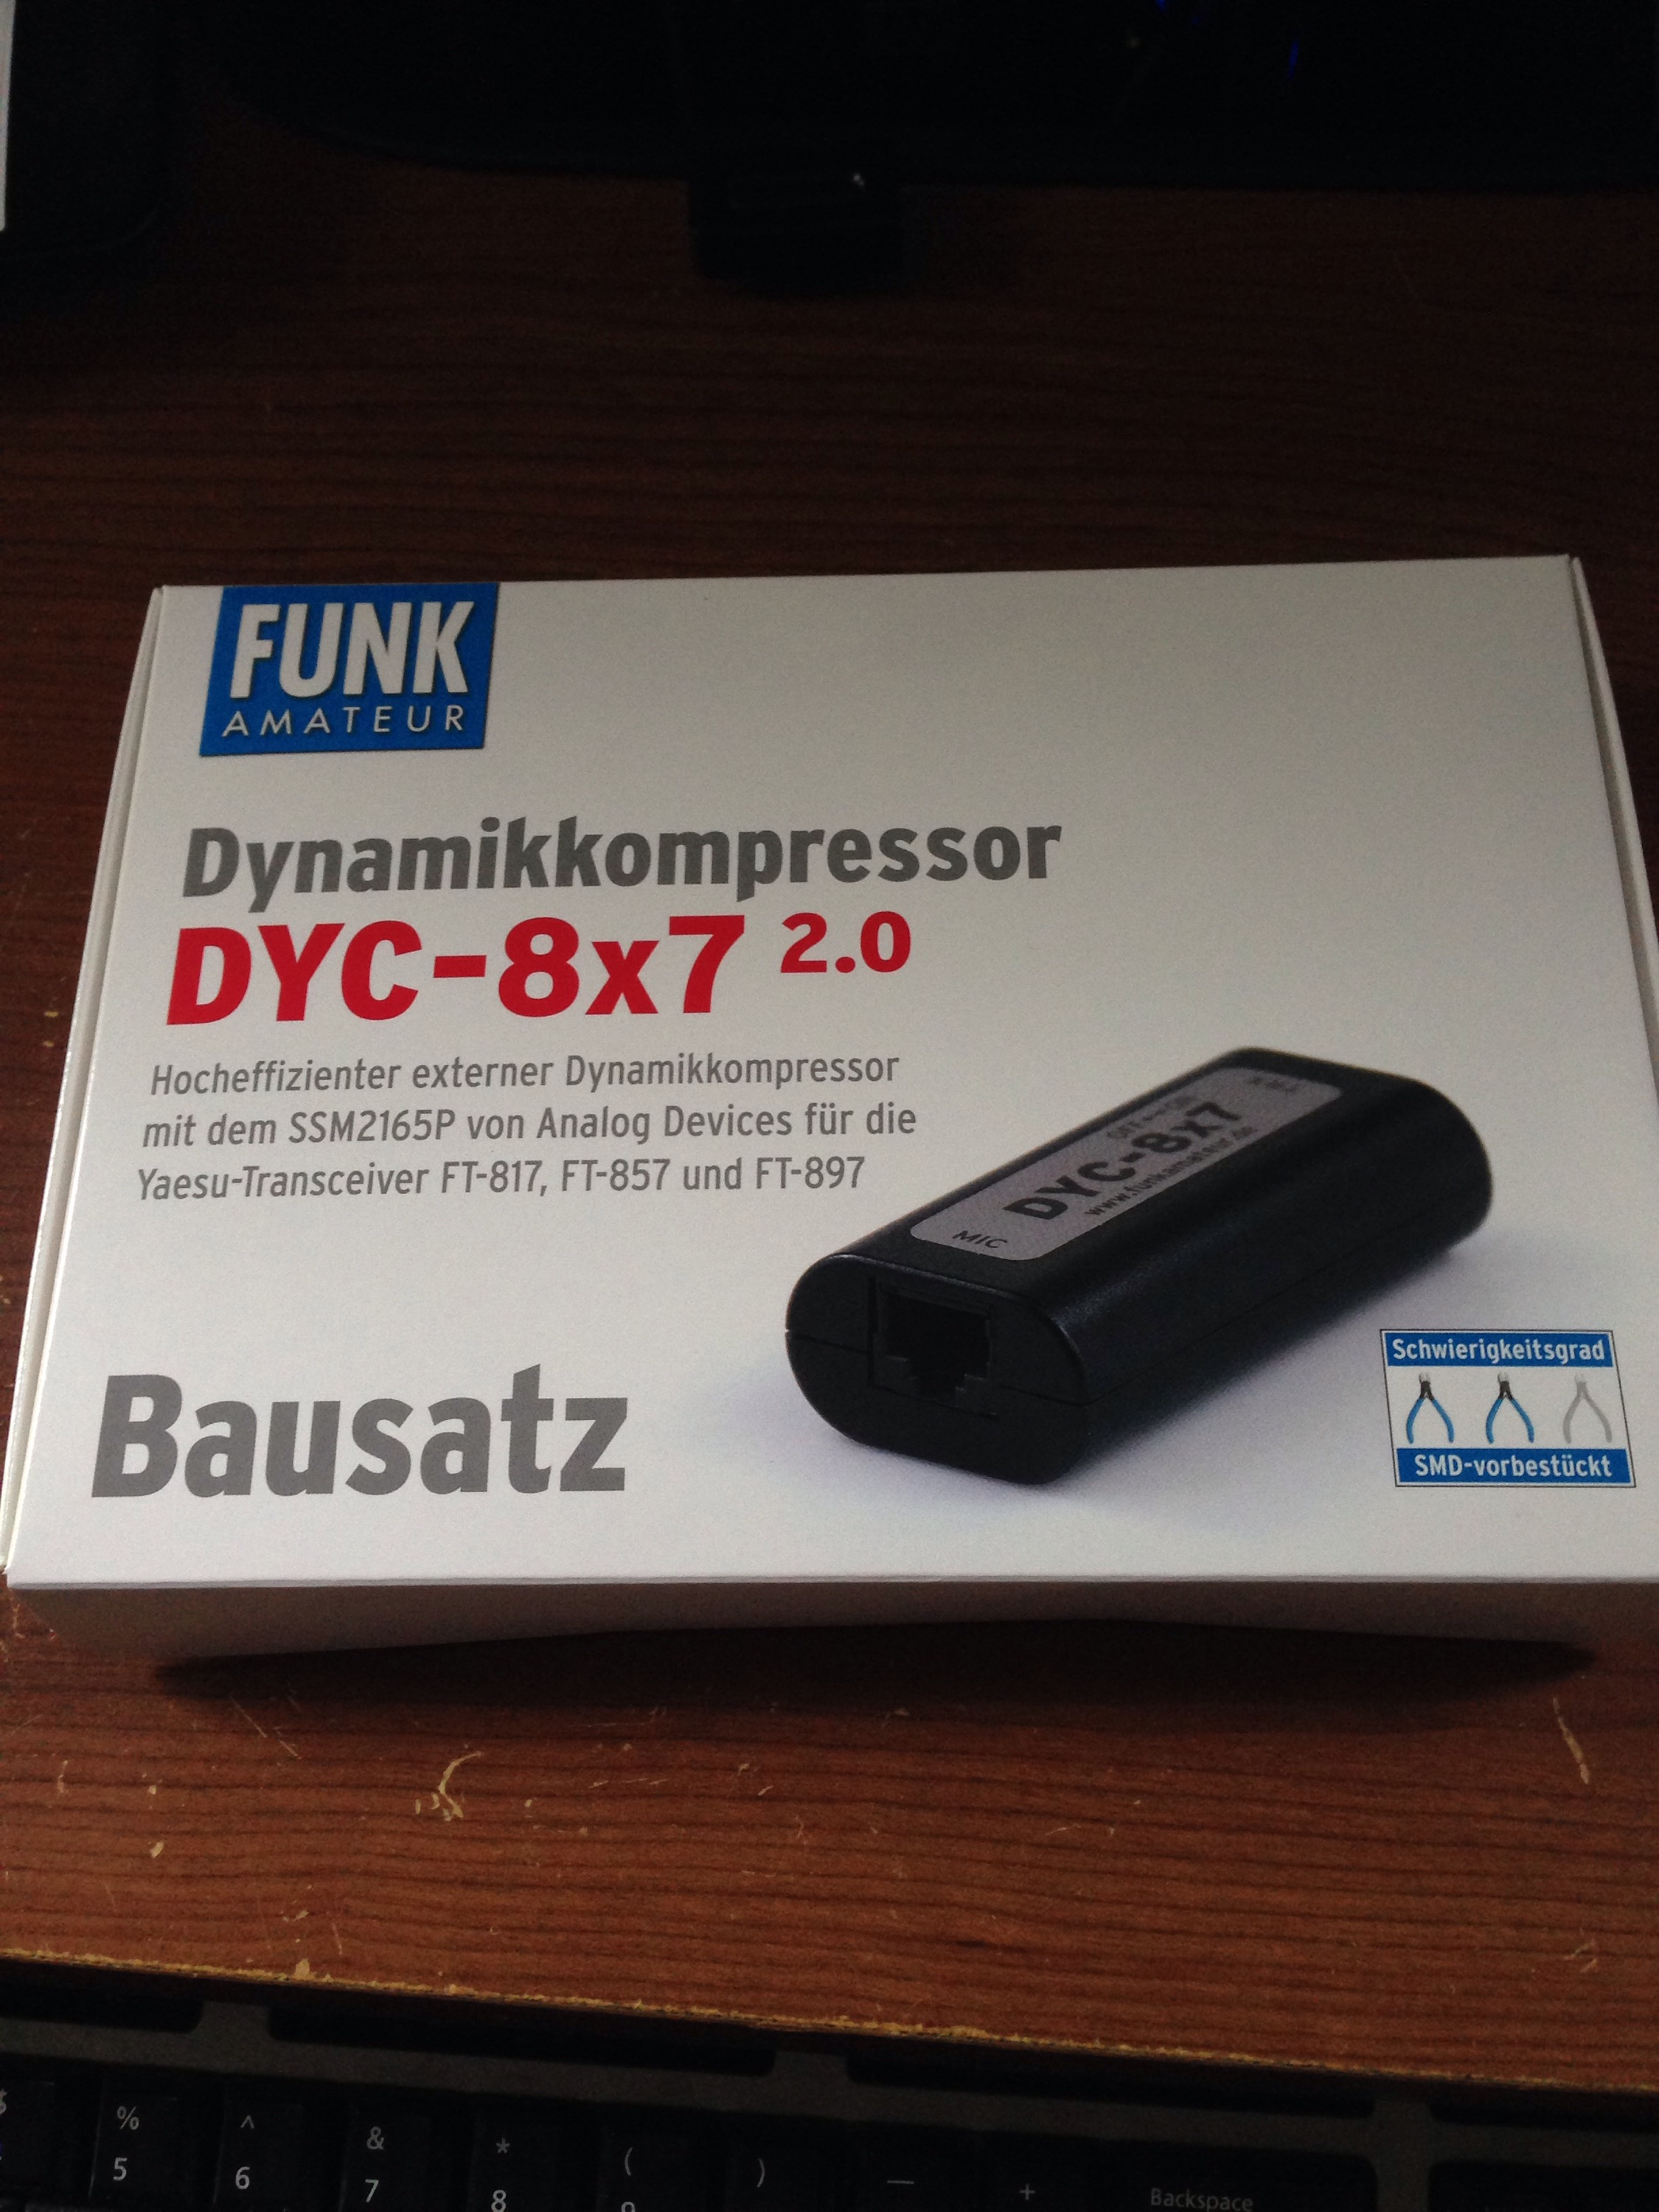 The Dyc 87 20 Dynamic Speech Compressor Kit Adventures In Condenser Microphone Schematic For Yaesu Mh31 One Surface Mount Capacitor Integrated Circuit Two Pots And A Switch Assembly Proceeds Smoothly With Only Warning Being To Ensure Parts